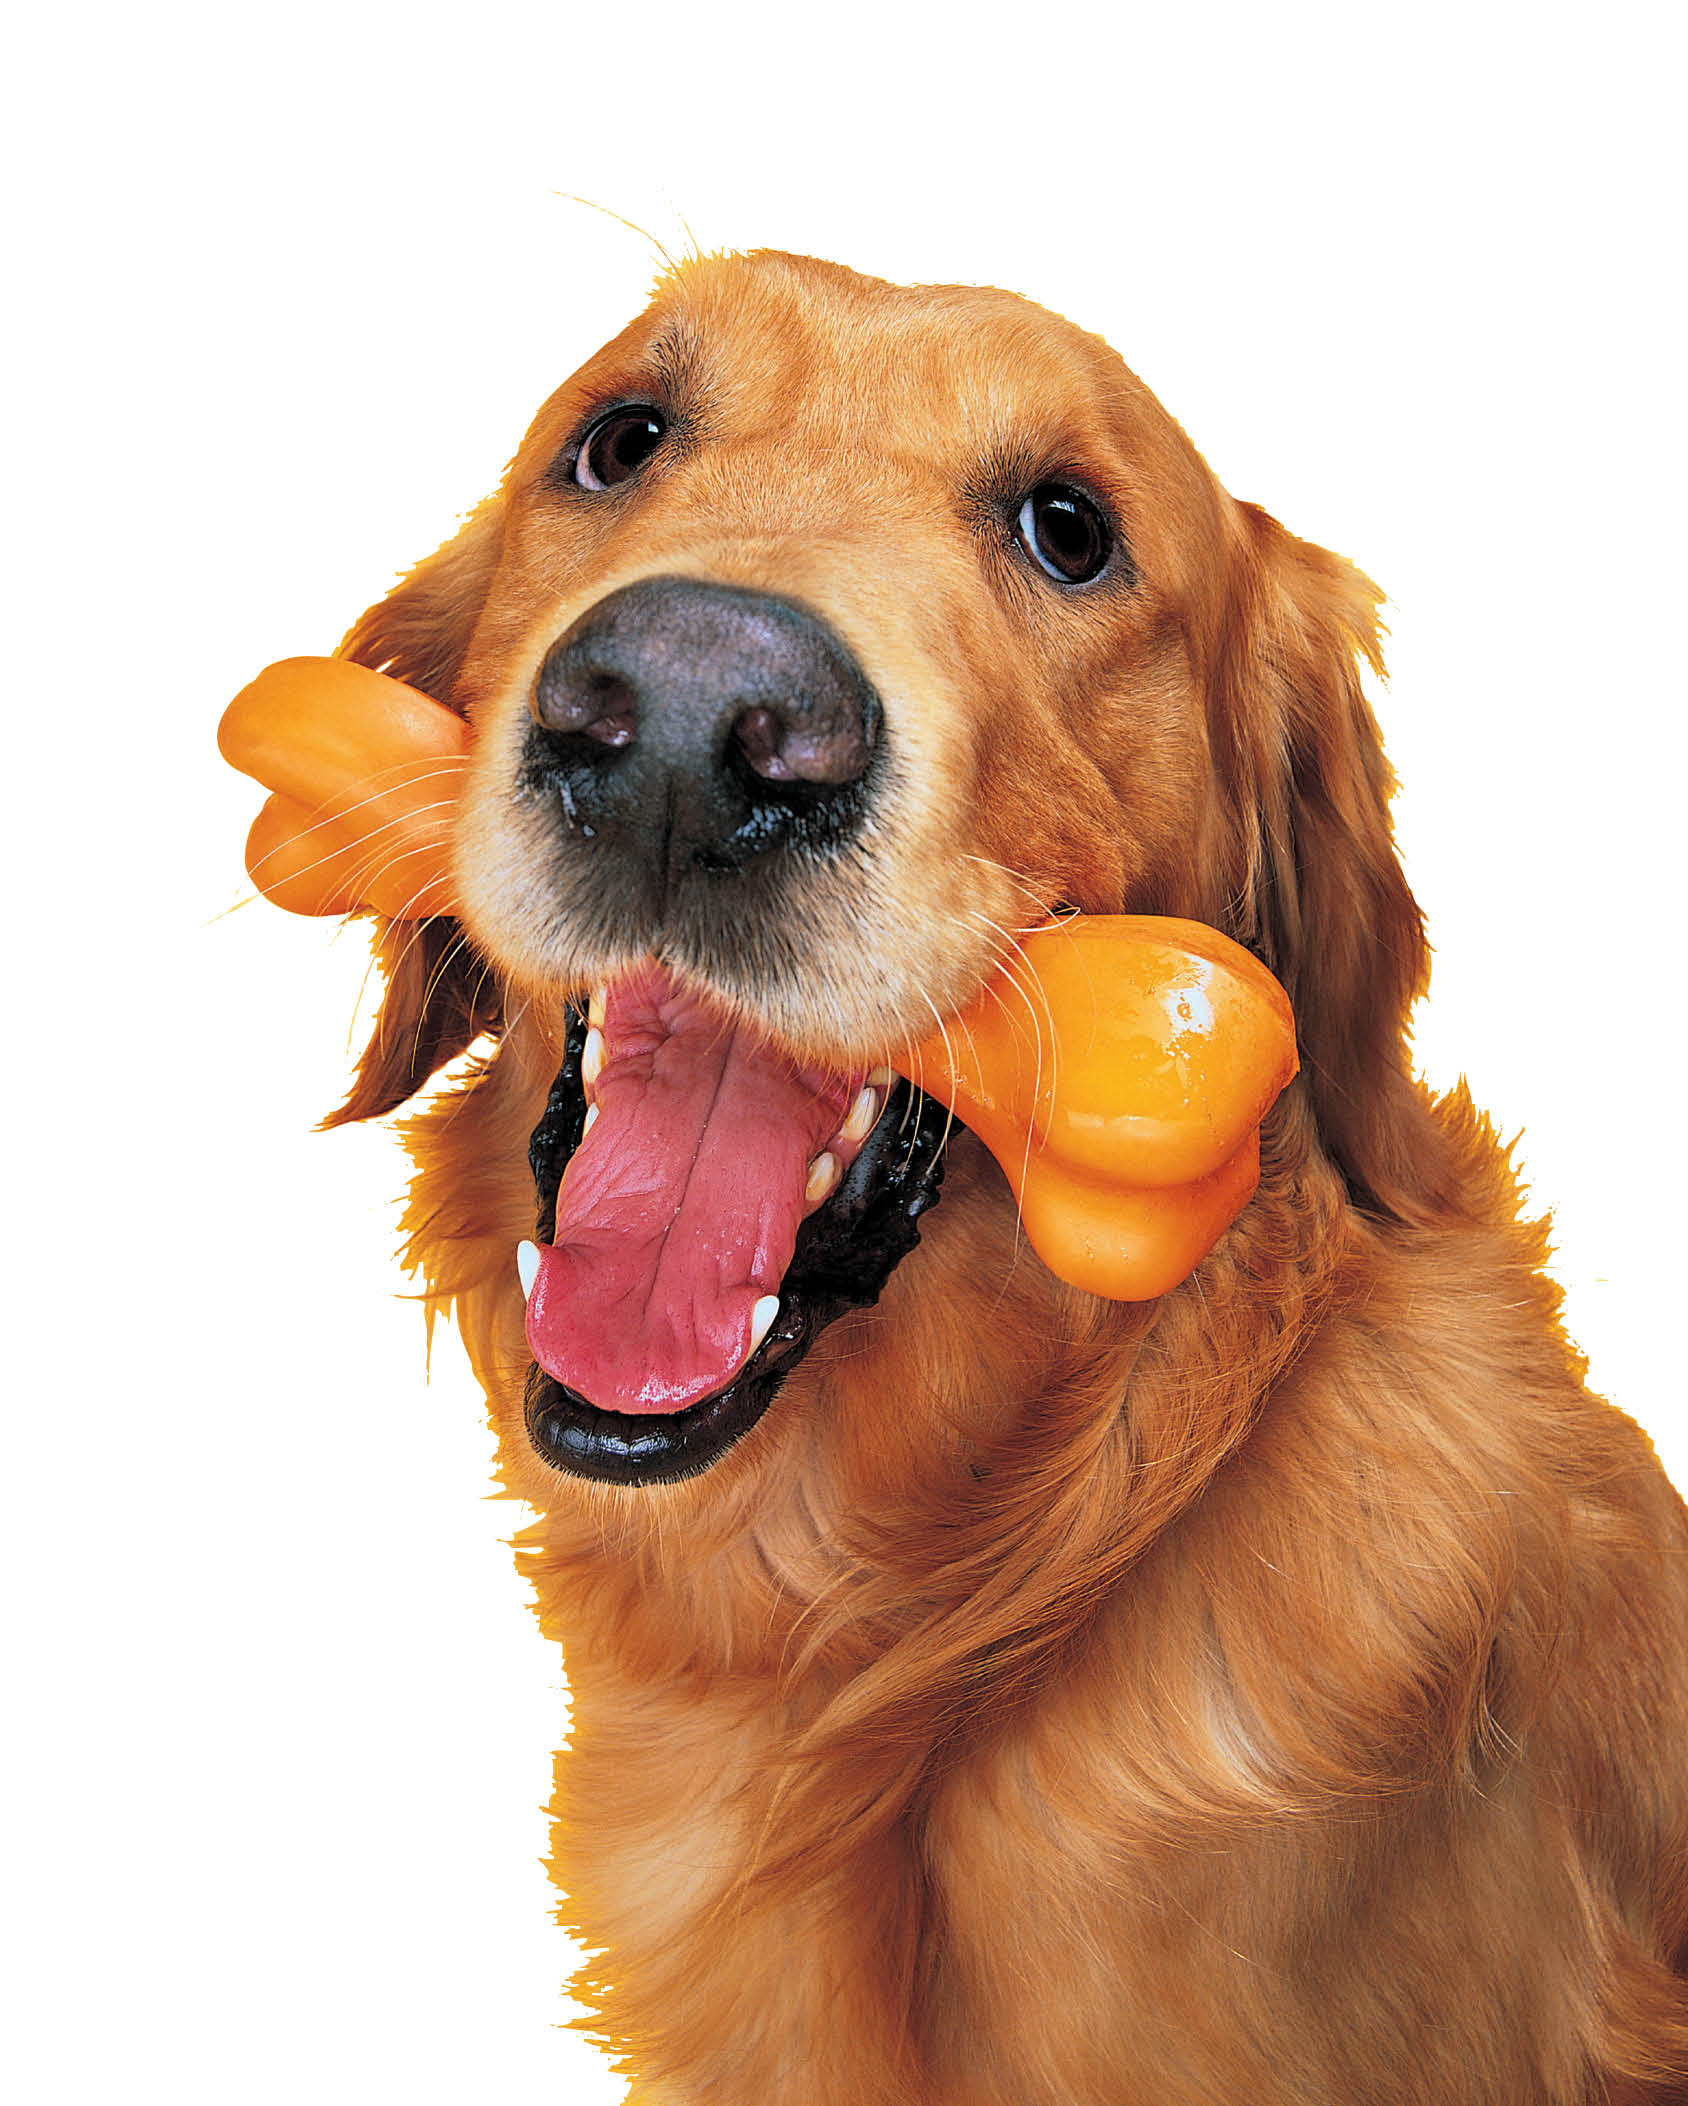 Your pet's good health depends on your love and proper veterinary care at The Animal Clinic in Santa Clara, CA